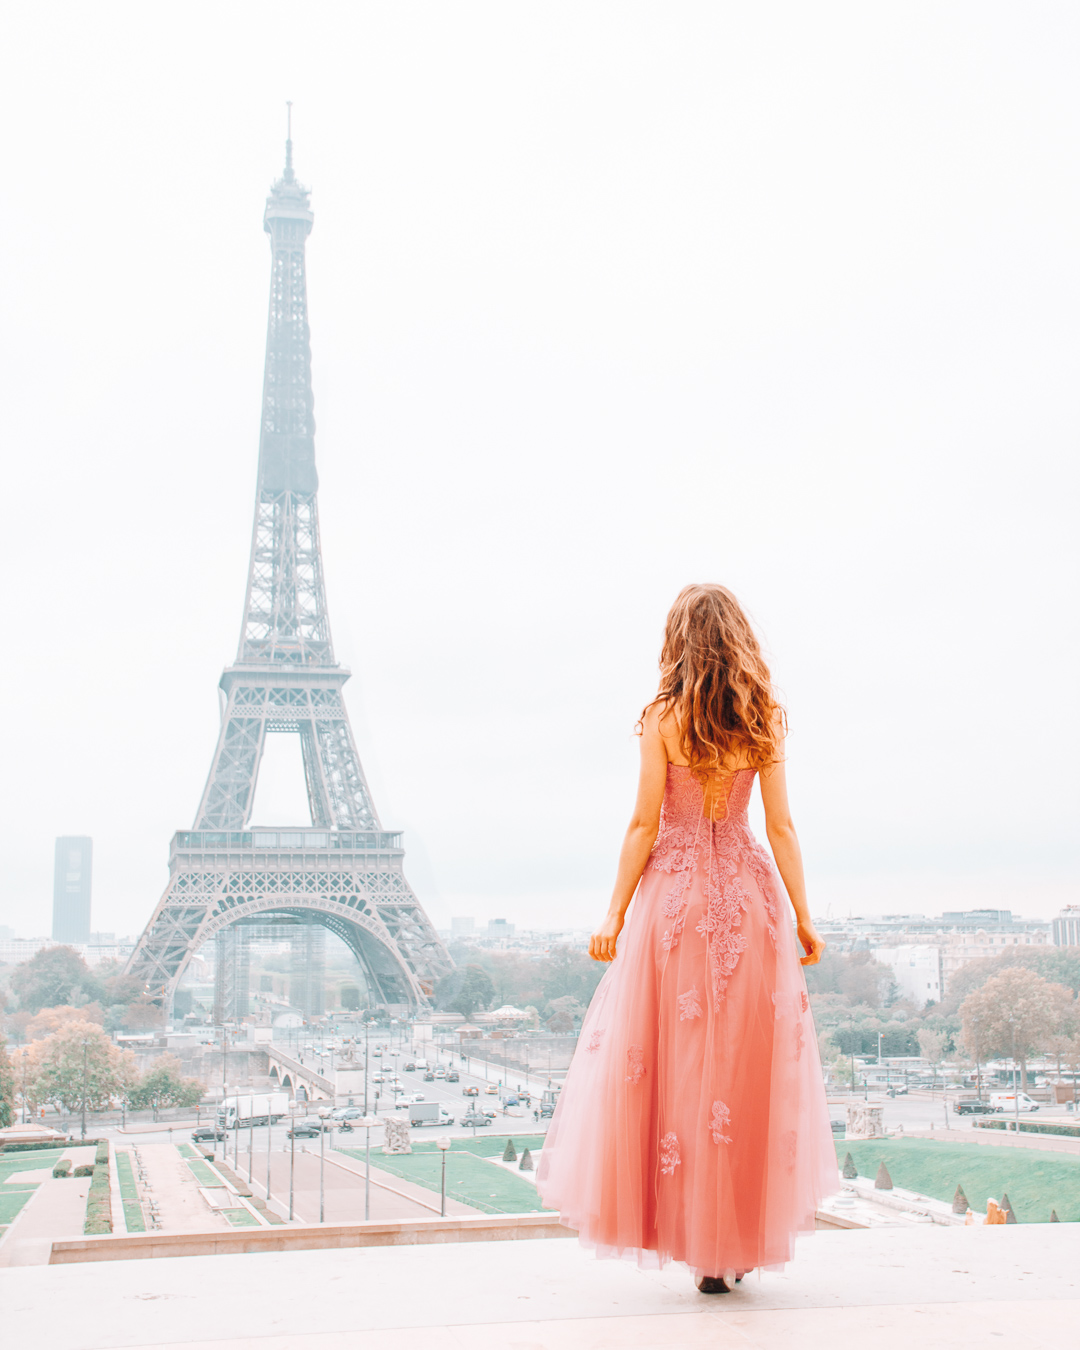 Girl in a long dress in front of the Eiffel Tower in Paris